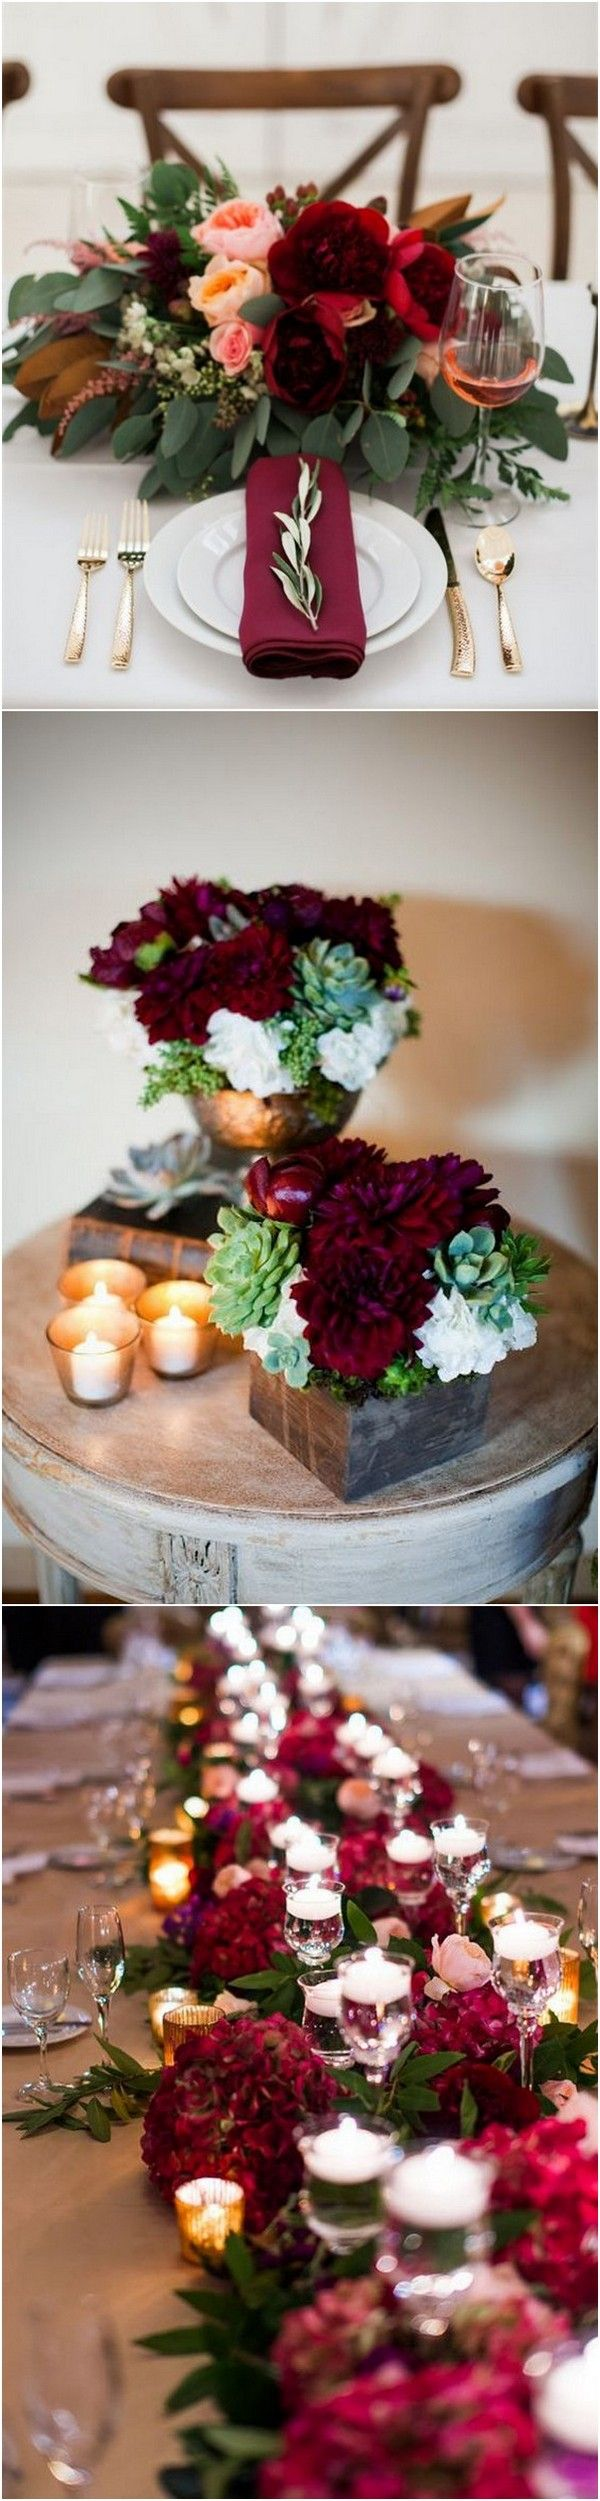 Wedding decorations and ideas december 2018 Top  Burgundy Wedding Centerpieces for Fall   Page  of